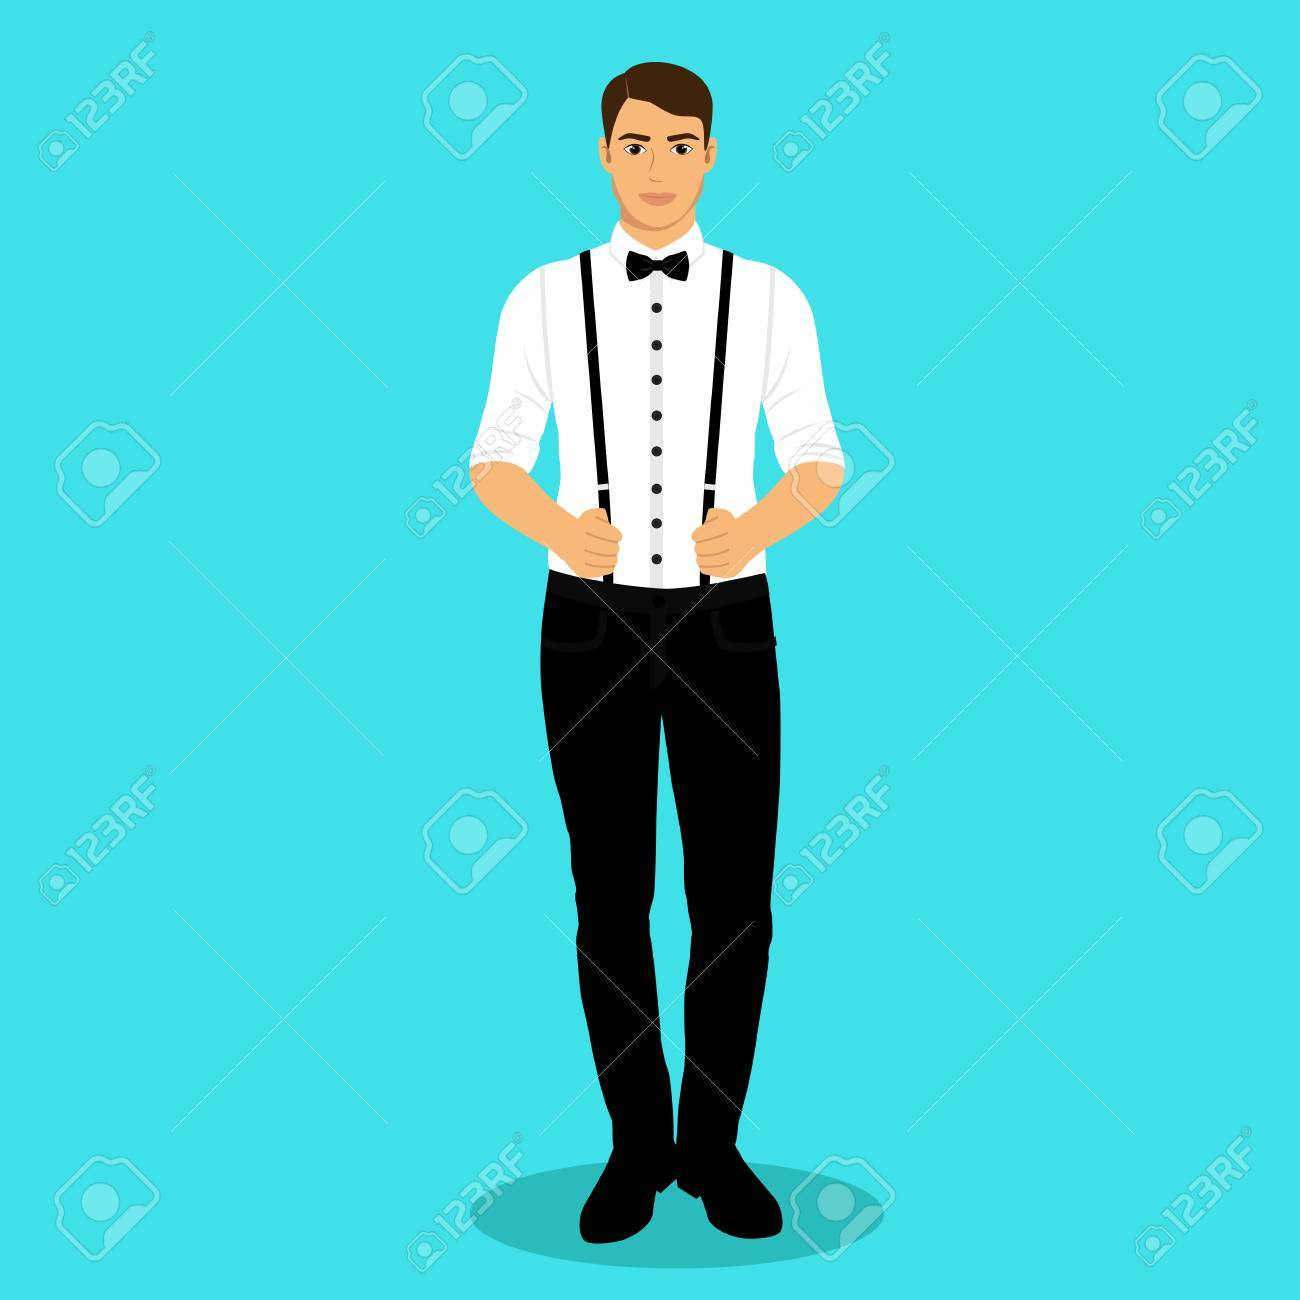 A Man With Suspenders. The Groom. Clothing. Wedding Men\'s Suit ...